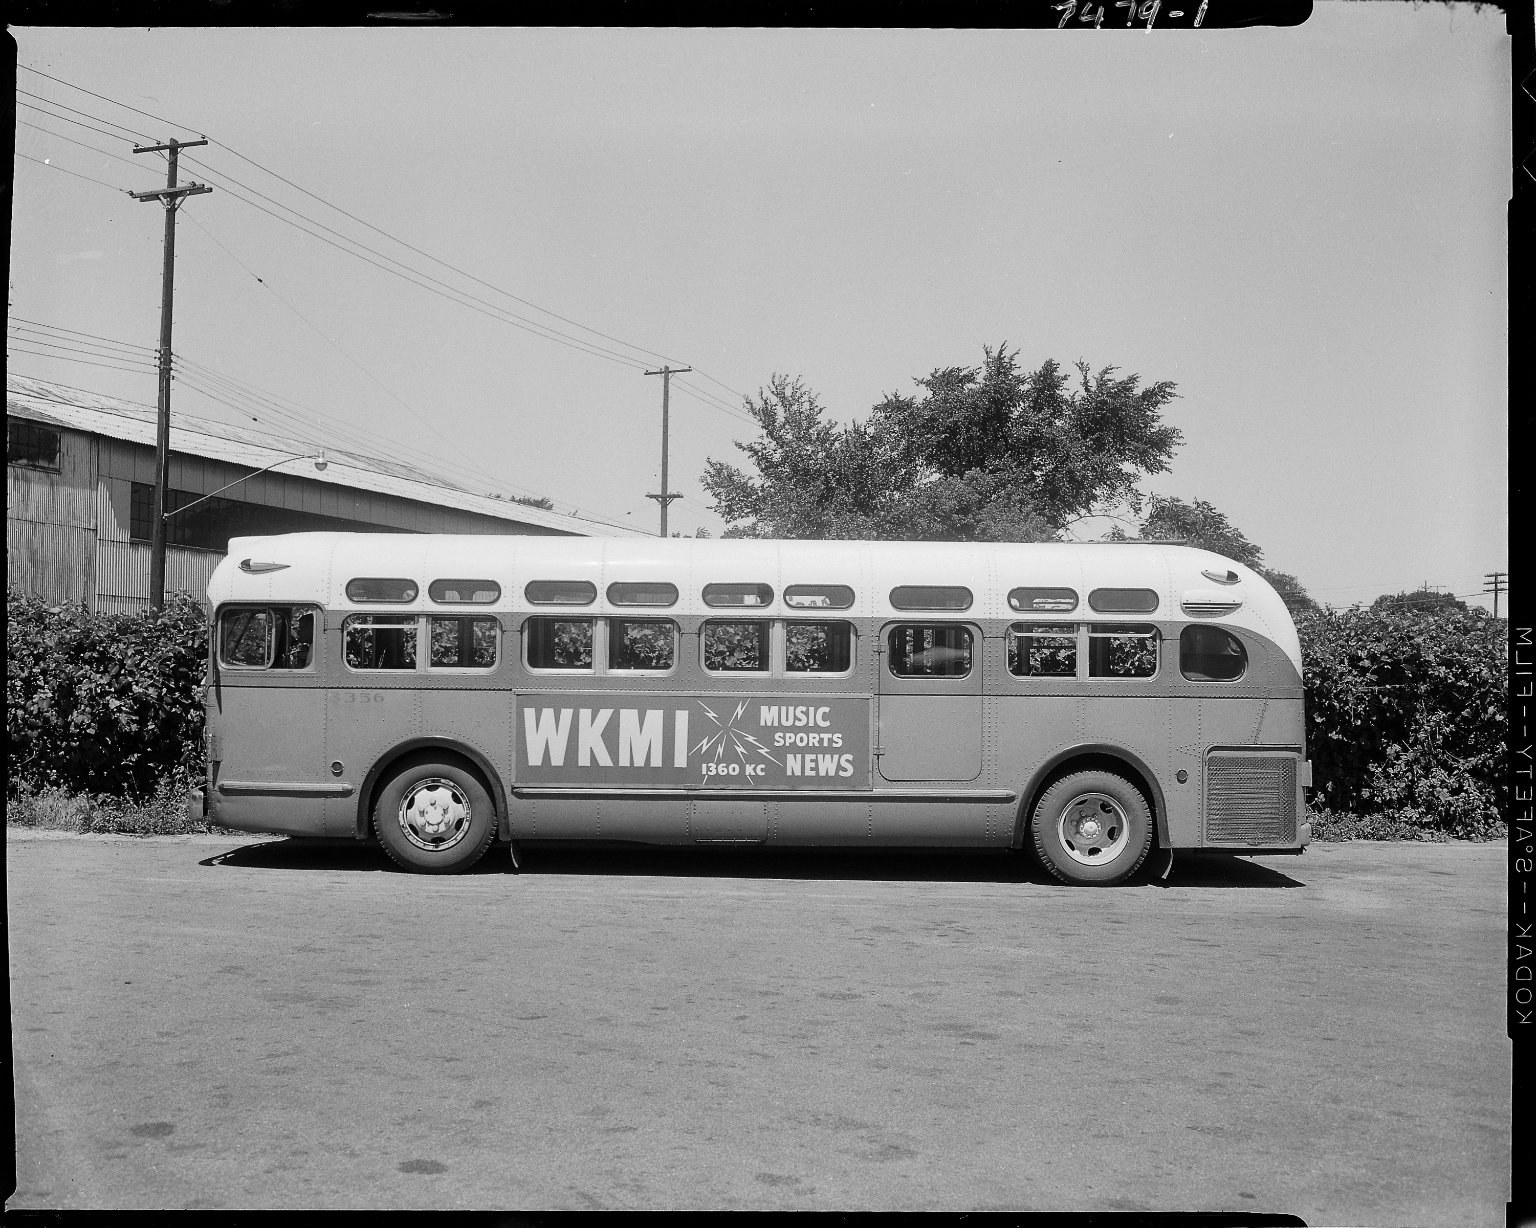 Bus with advertising sign, WKMI Radio